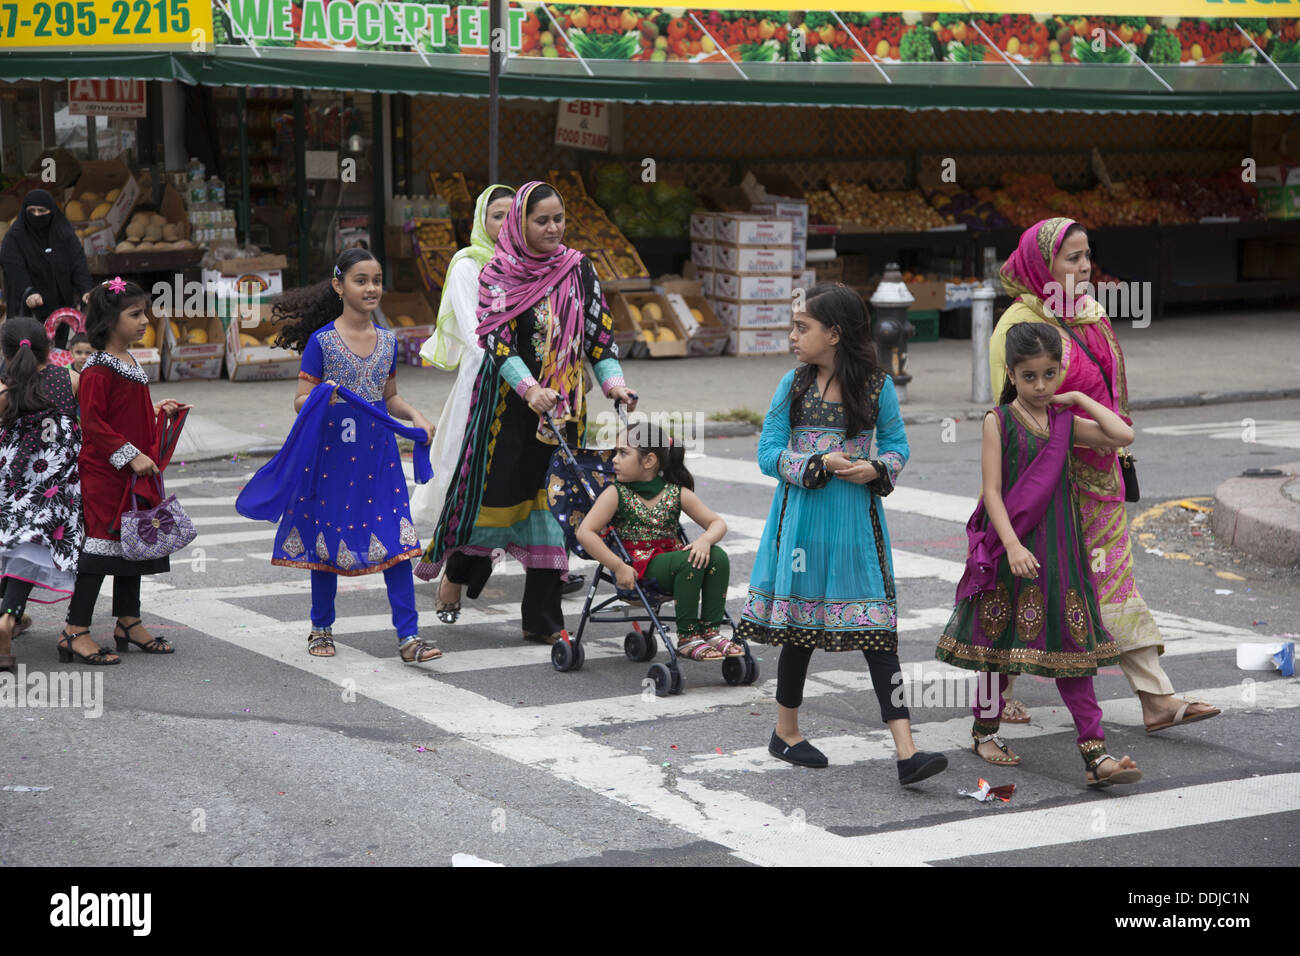 Pakistani immigrant neighborhood during Pakistan Independence celebrations in Brooklyn, NY. - Stock Image